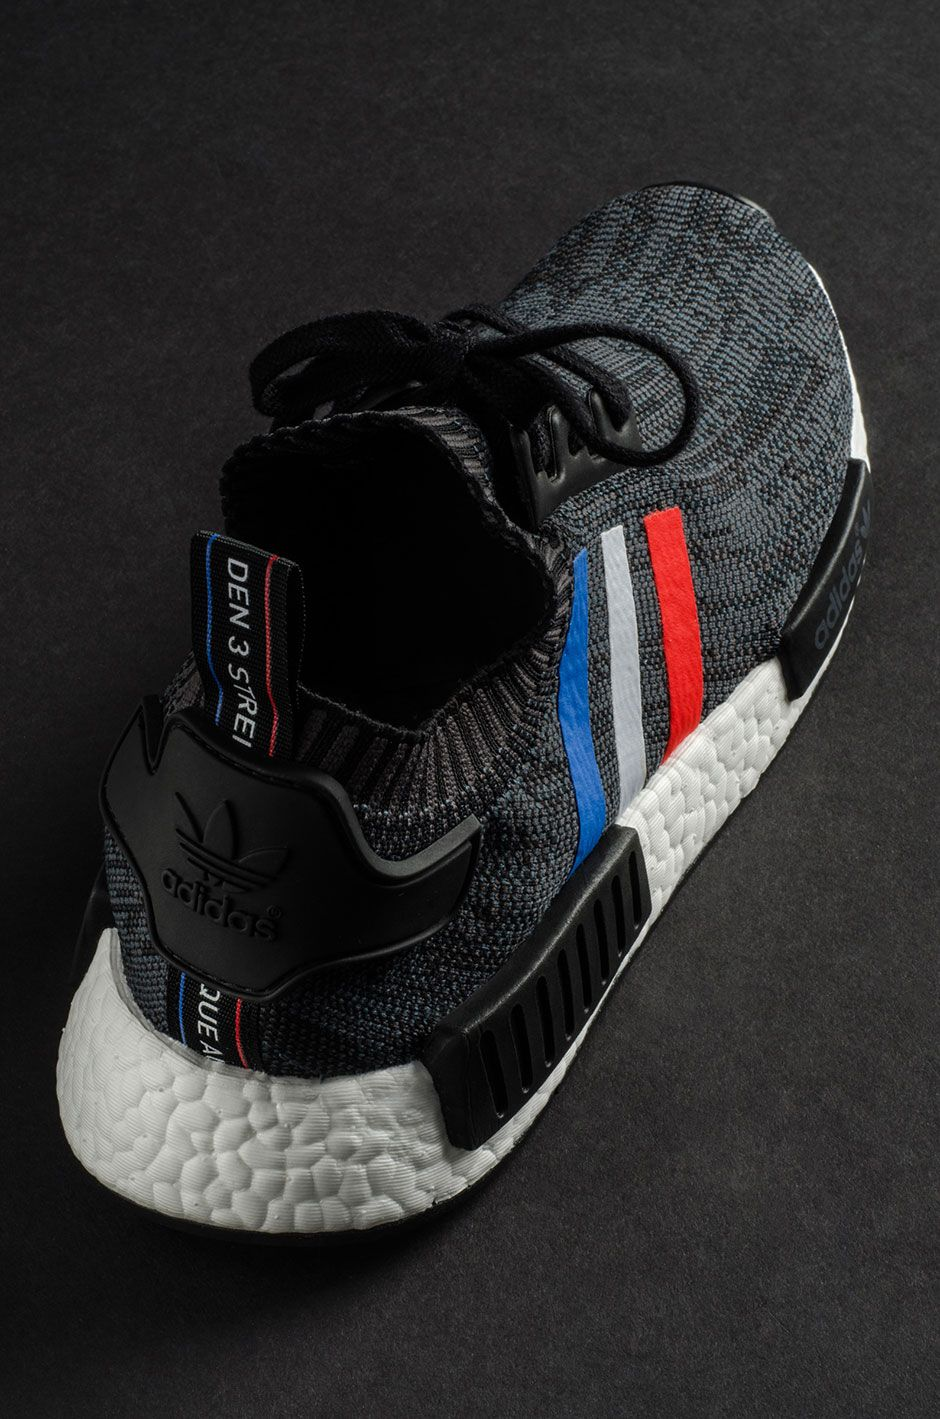 d59d8db42 adidas NMD R1 Primeknit Tri-color Pack  BRKicks